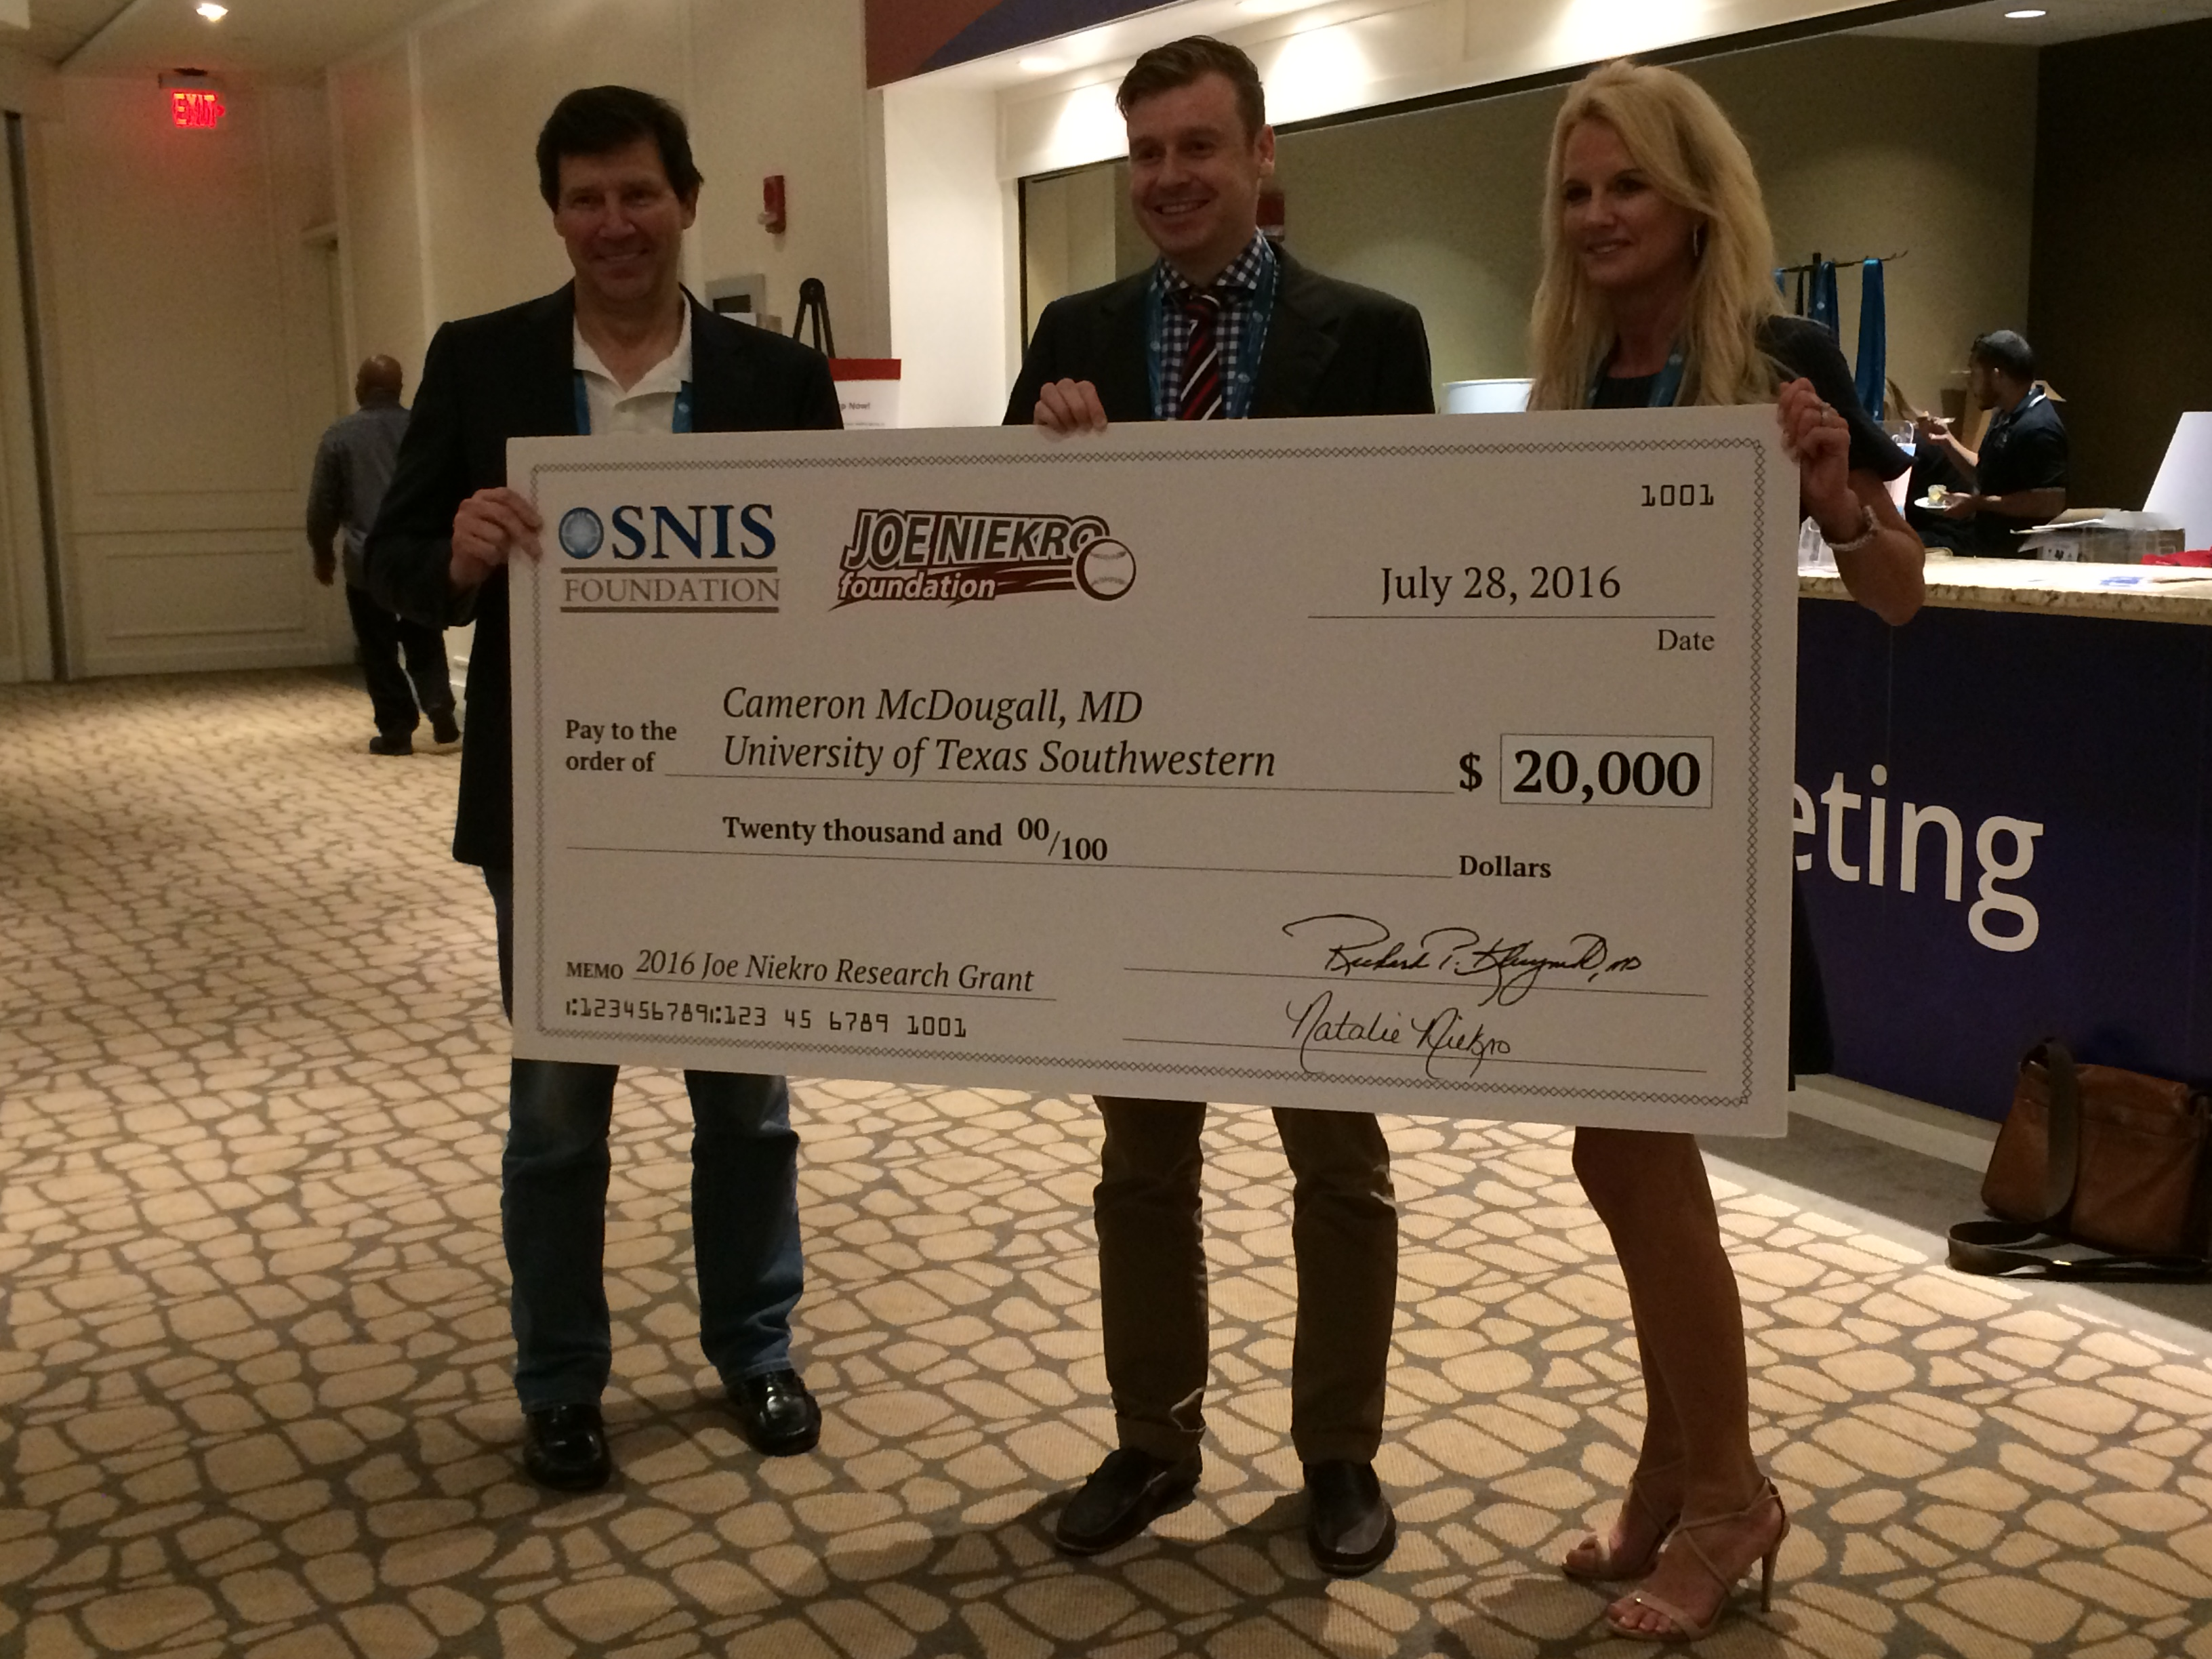 https://www.joeniekrofoundation.com/aneurysms/jnf-awards-three-seed-grants-at-2016-snis-annual-meeting/attachment/img_1052/